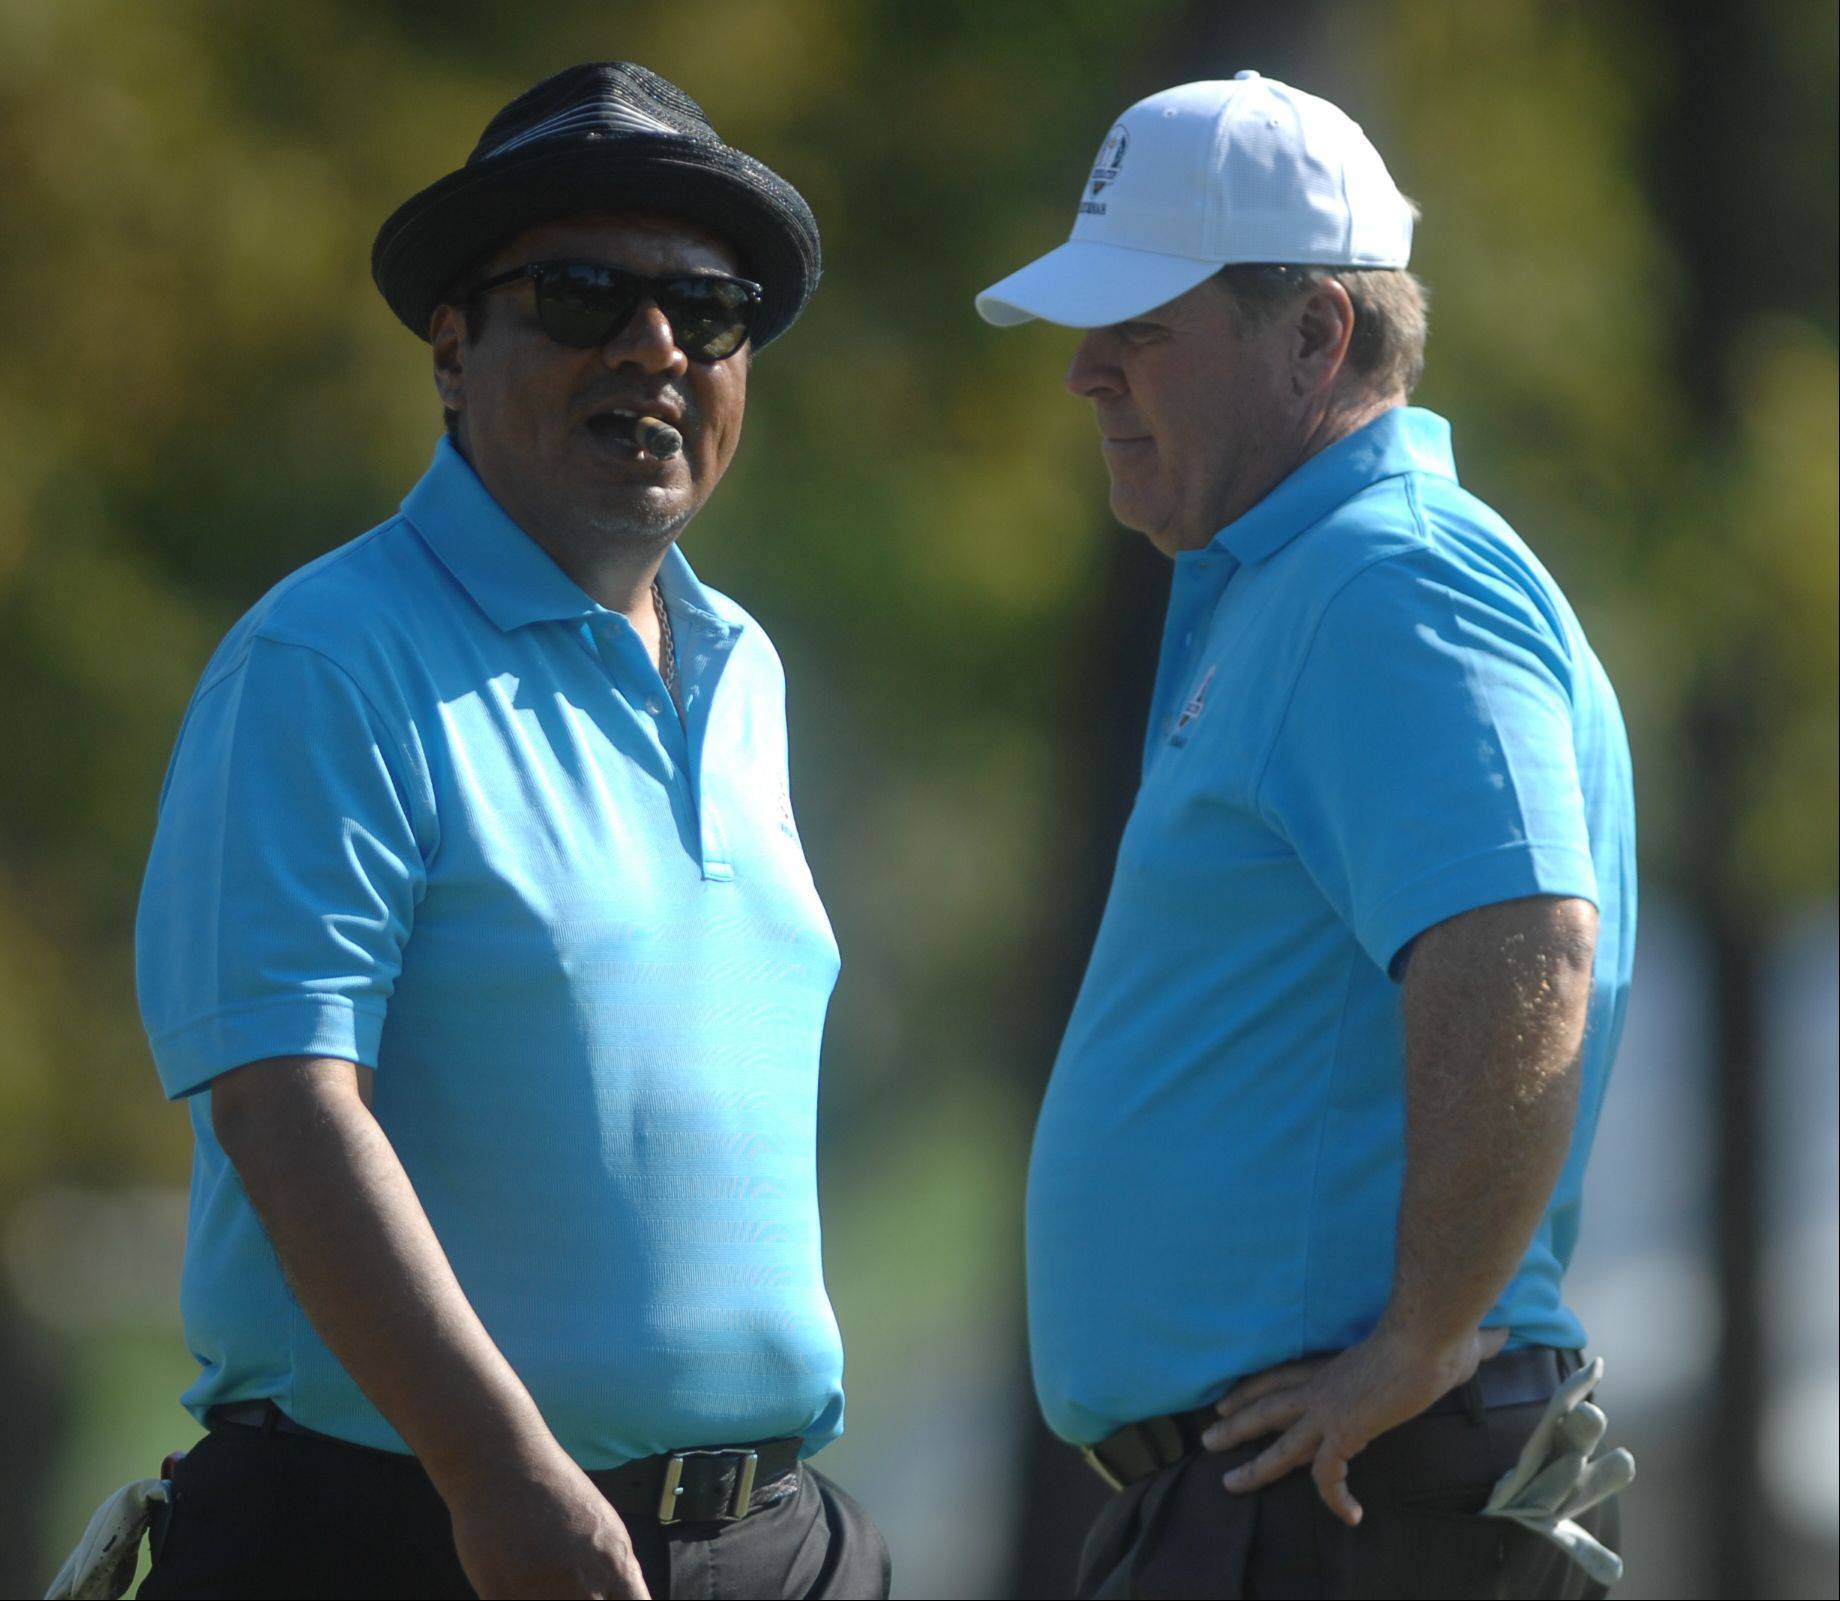 Actor George Lopez, left, and PGA golfer Hal Sutton at the fourth hole.